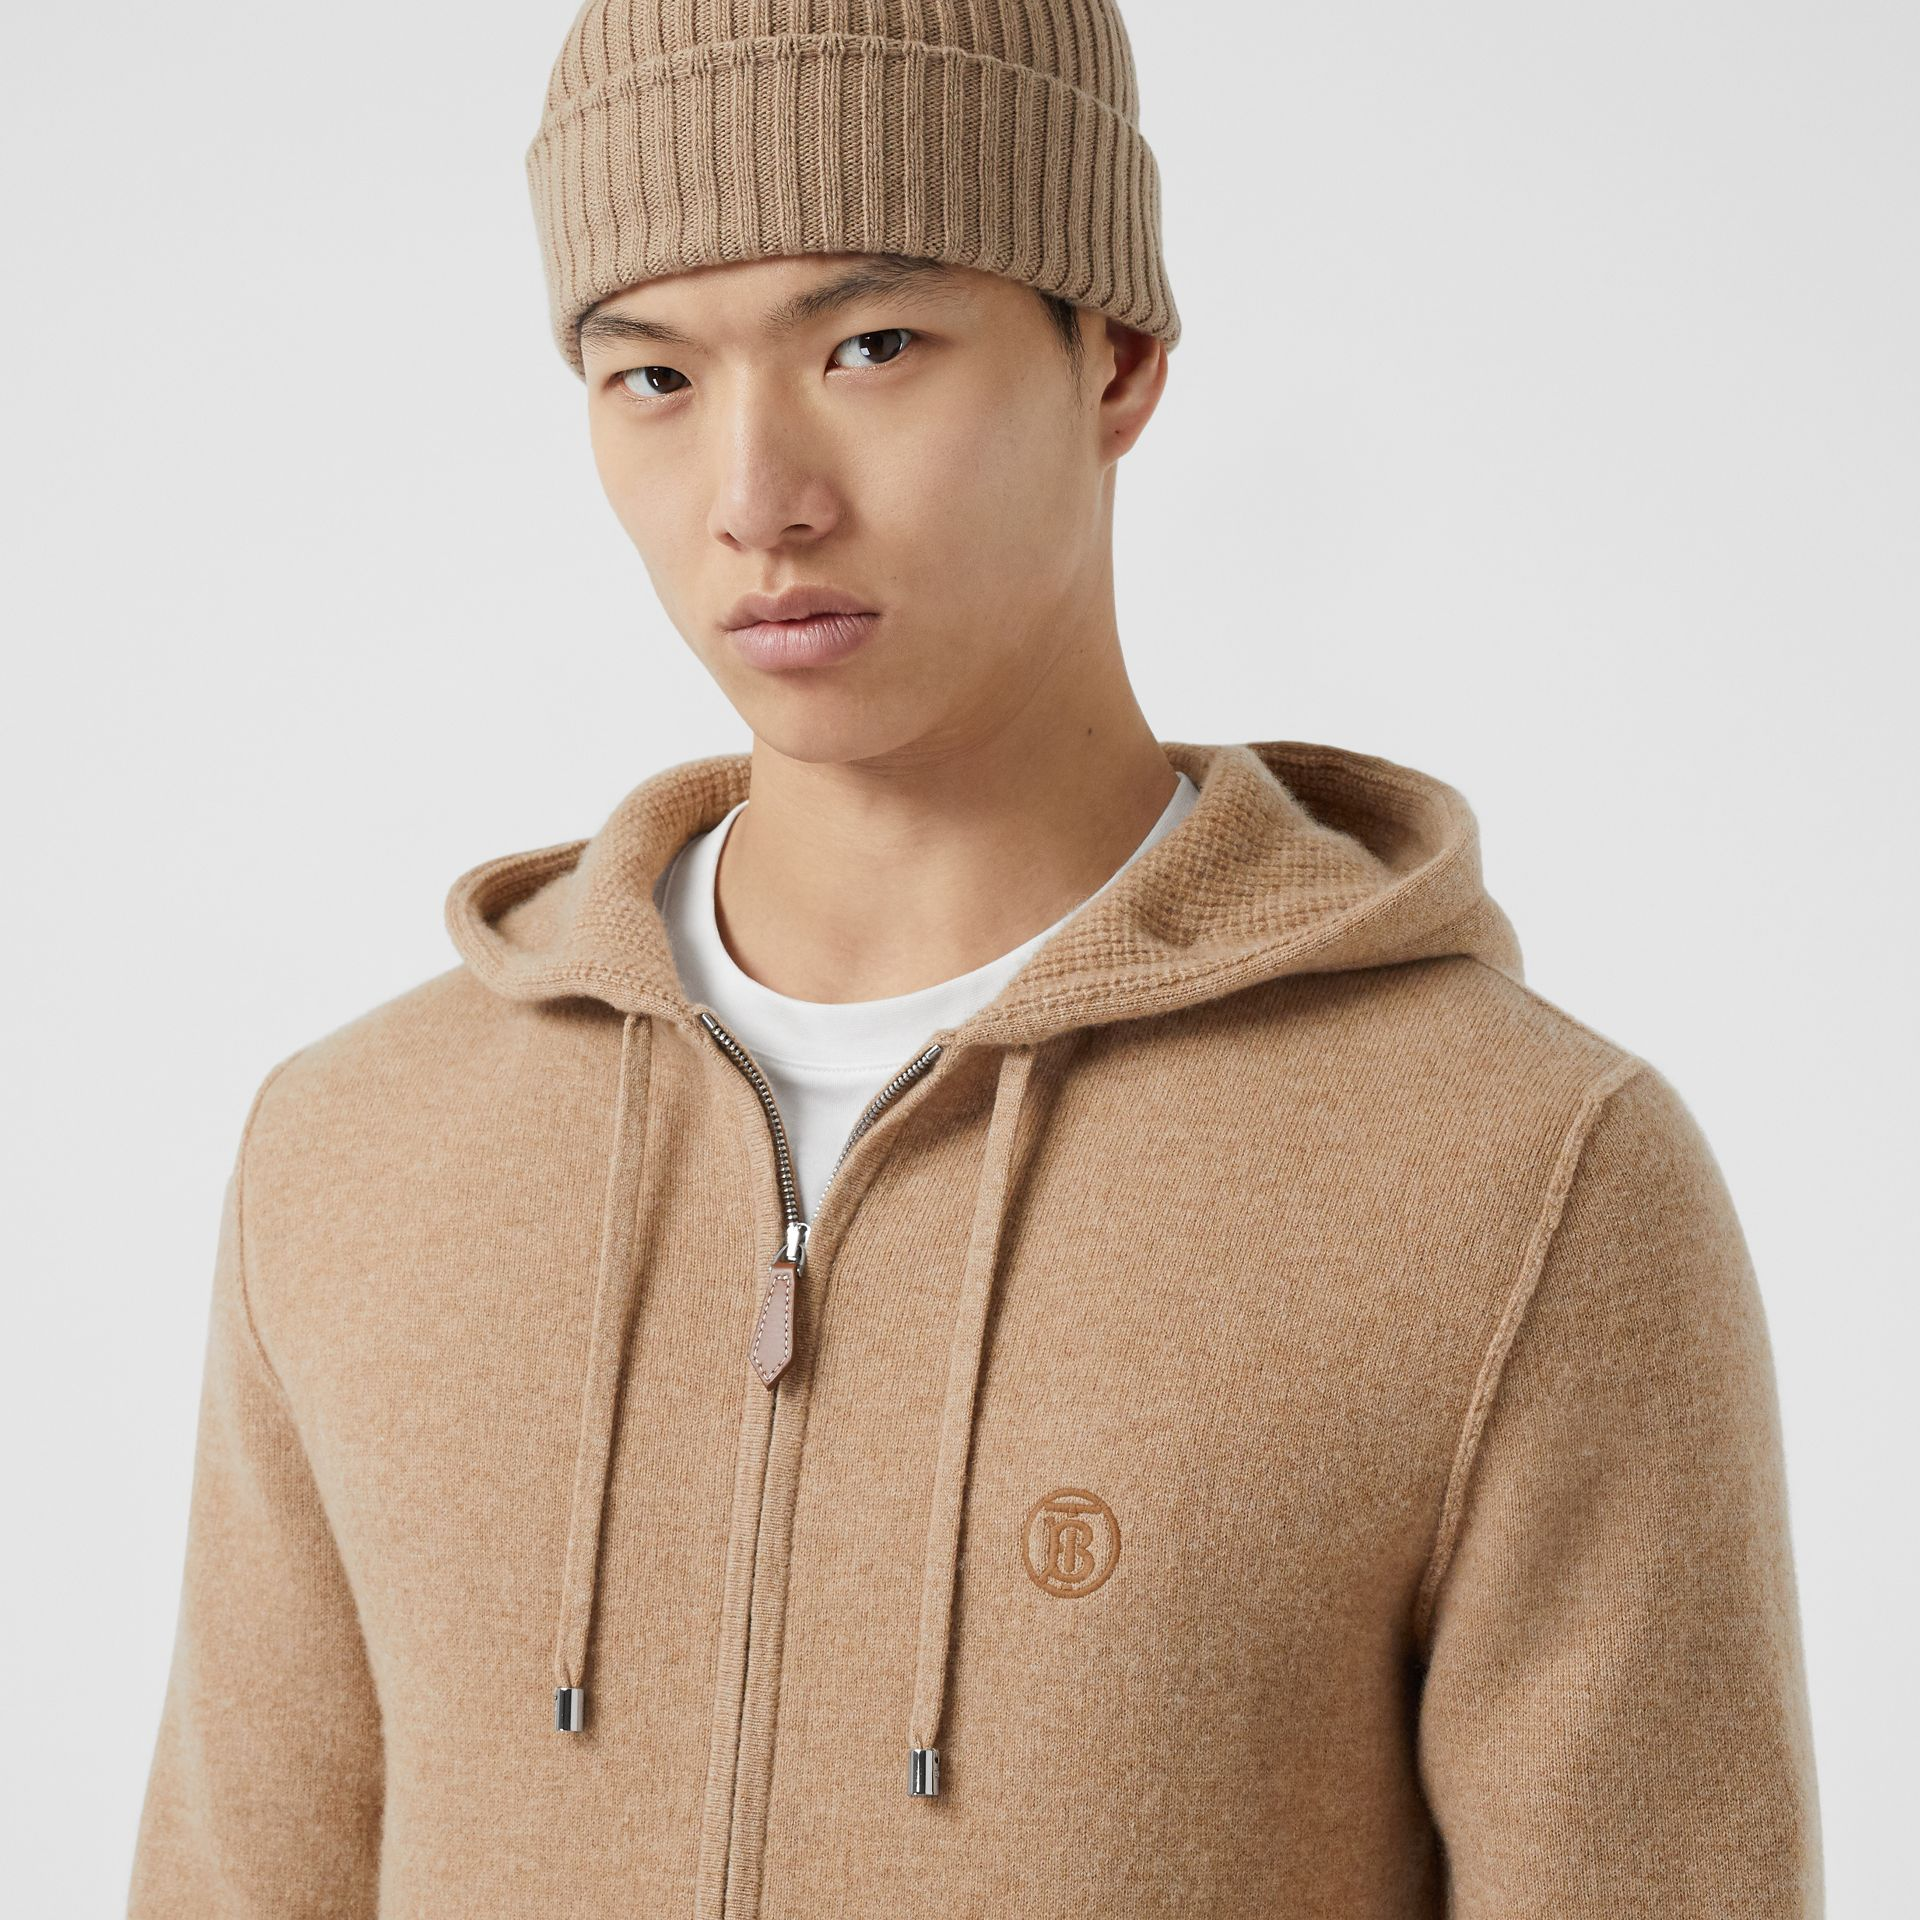 Monogram Motif Cashmere Blend Hooded Top in Pale Coffee - Men | Burberry Hong Kong S.A.R - gallery image 4